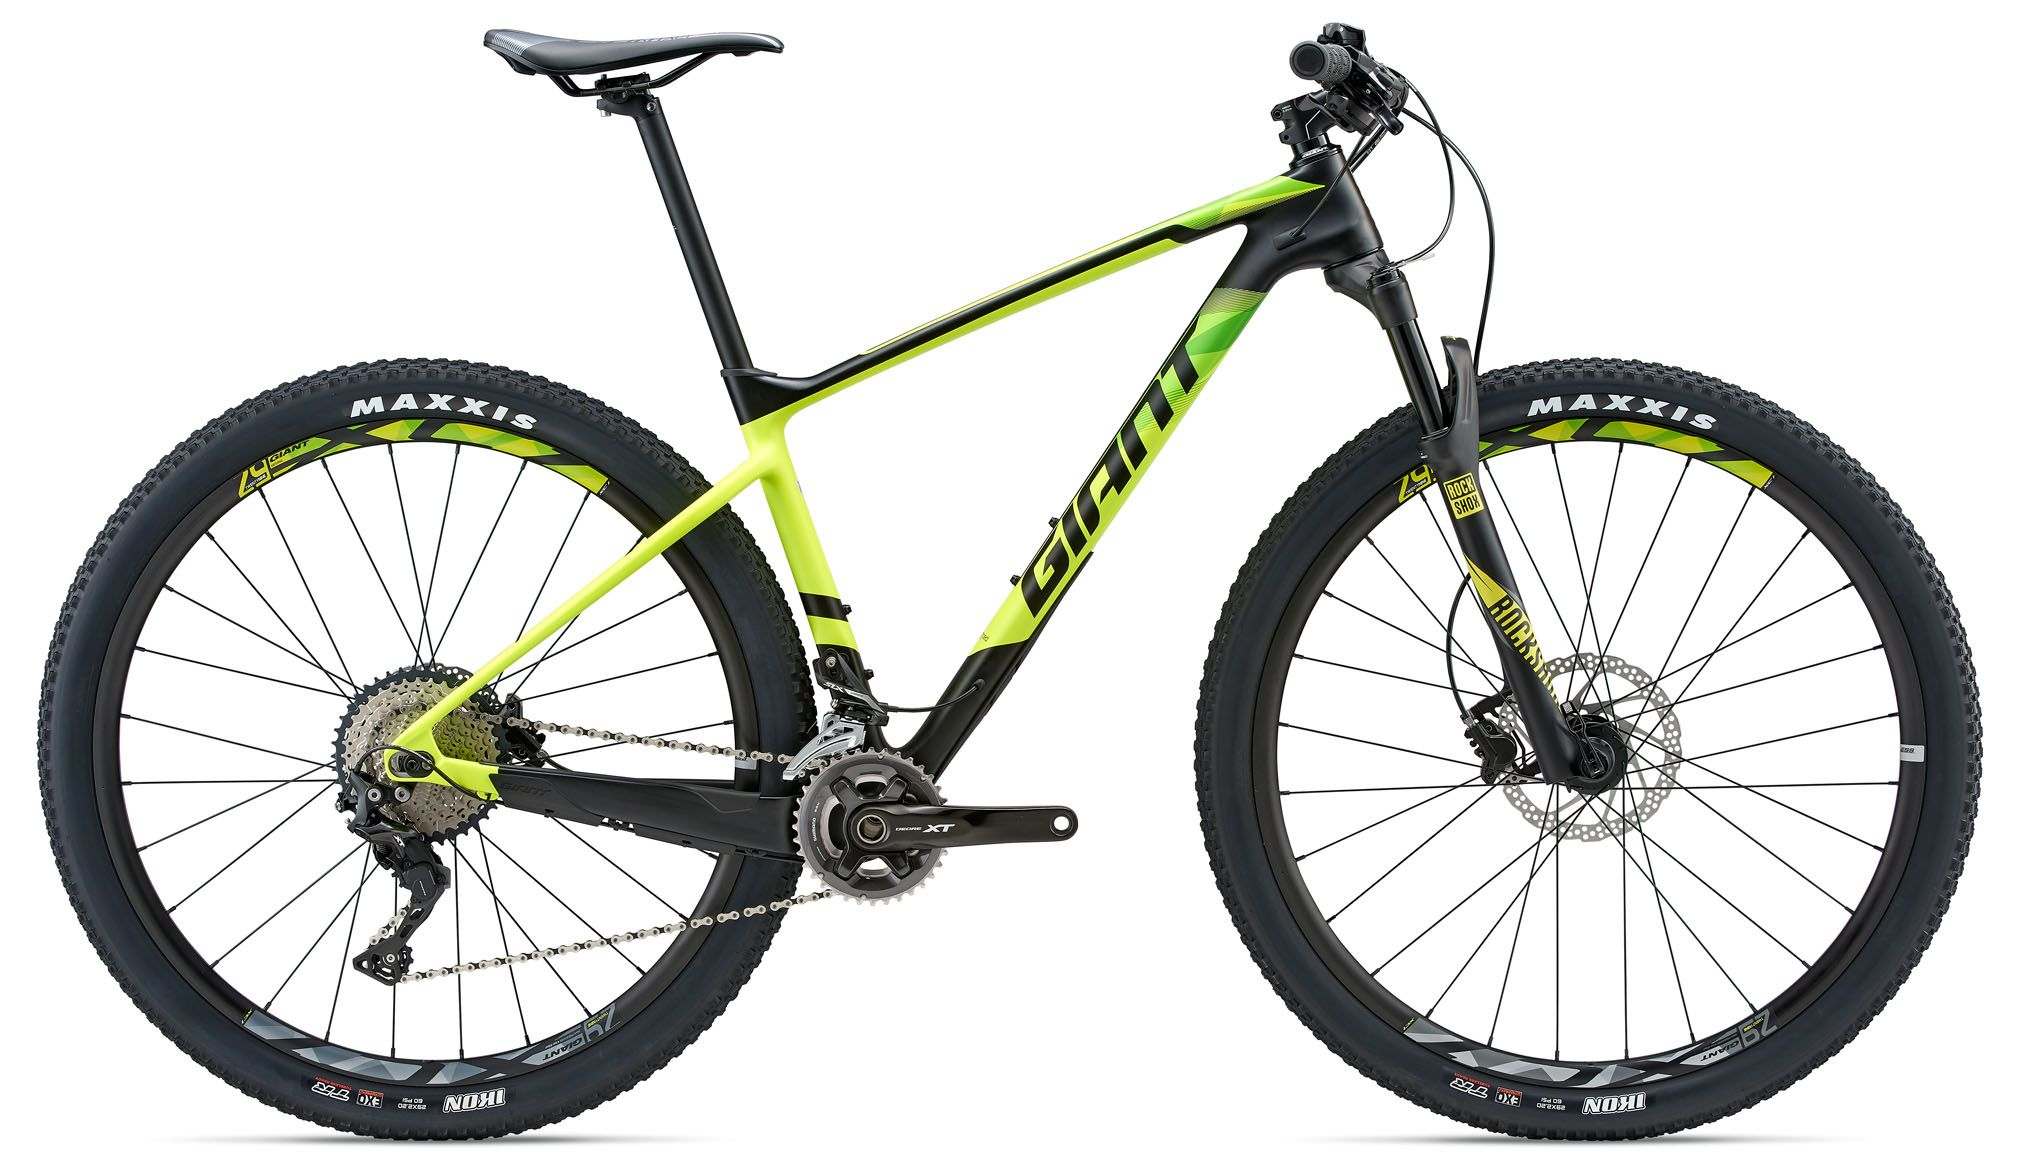 Велосипед Giant XTC Advanced 29er 2 GE 2018 giant xtc advanced 27 5 3 2016 comp yellow